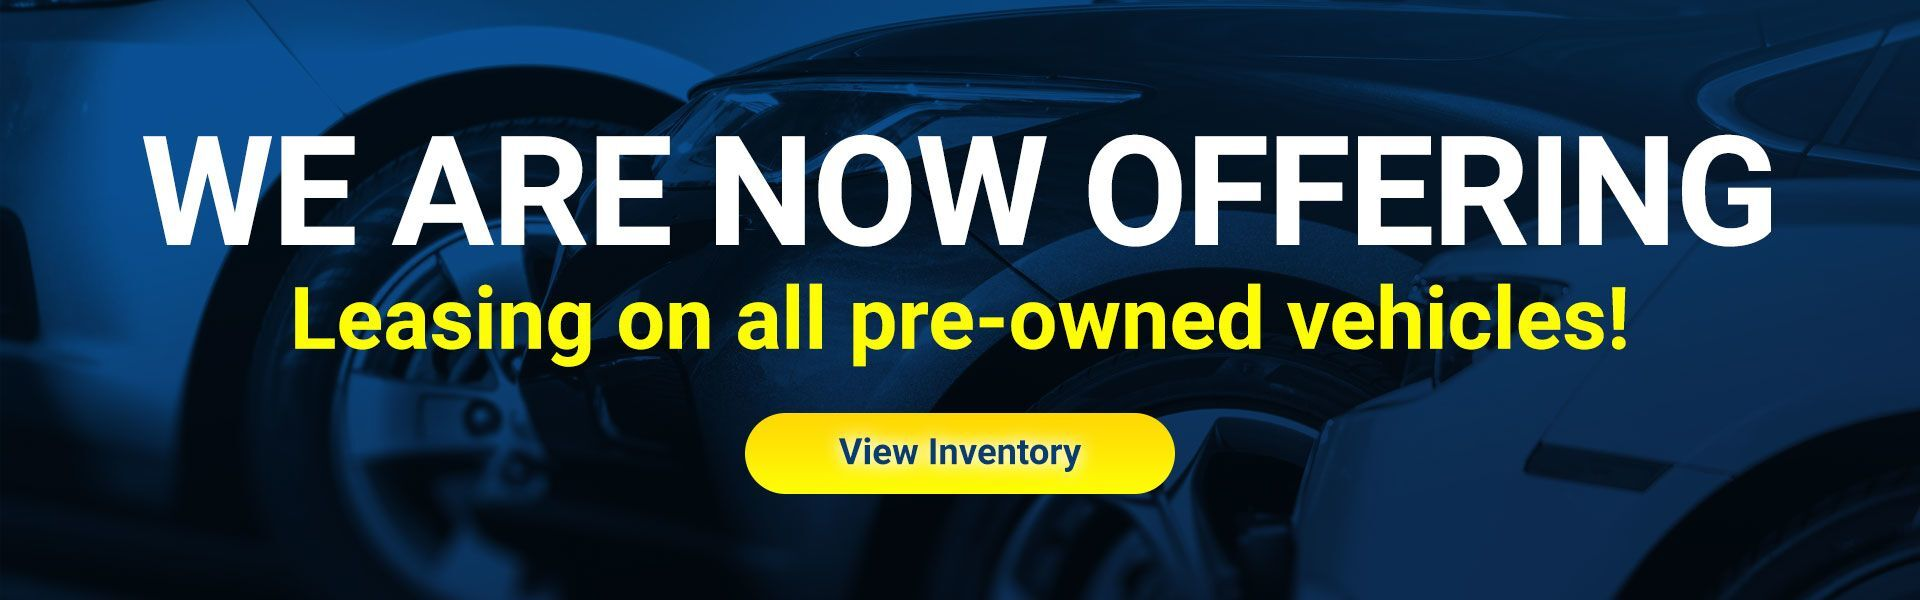 preowned vehicles